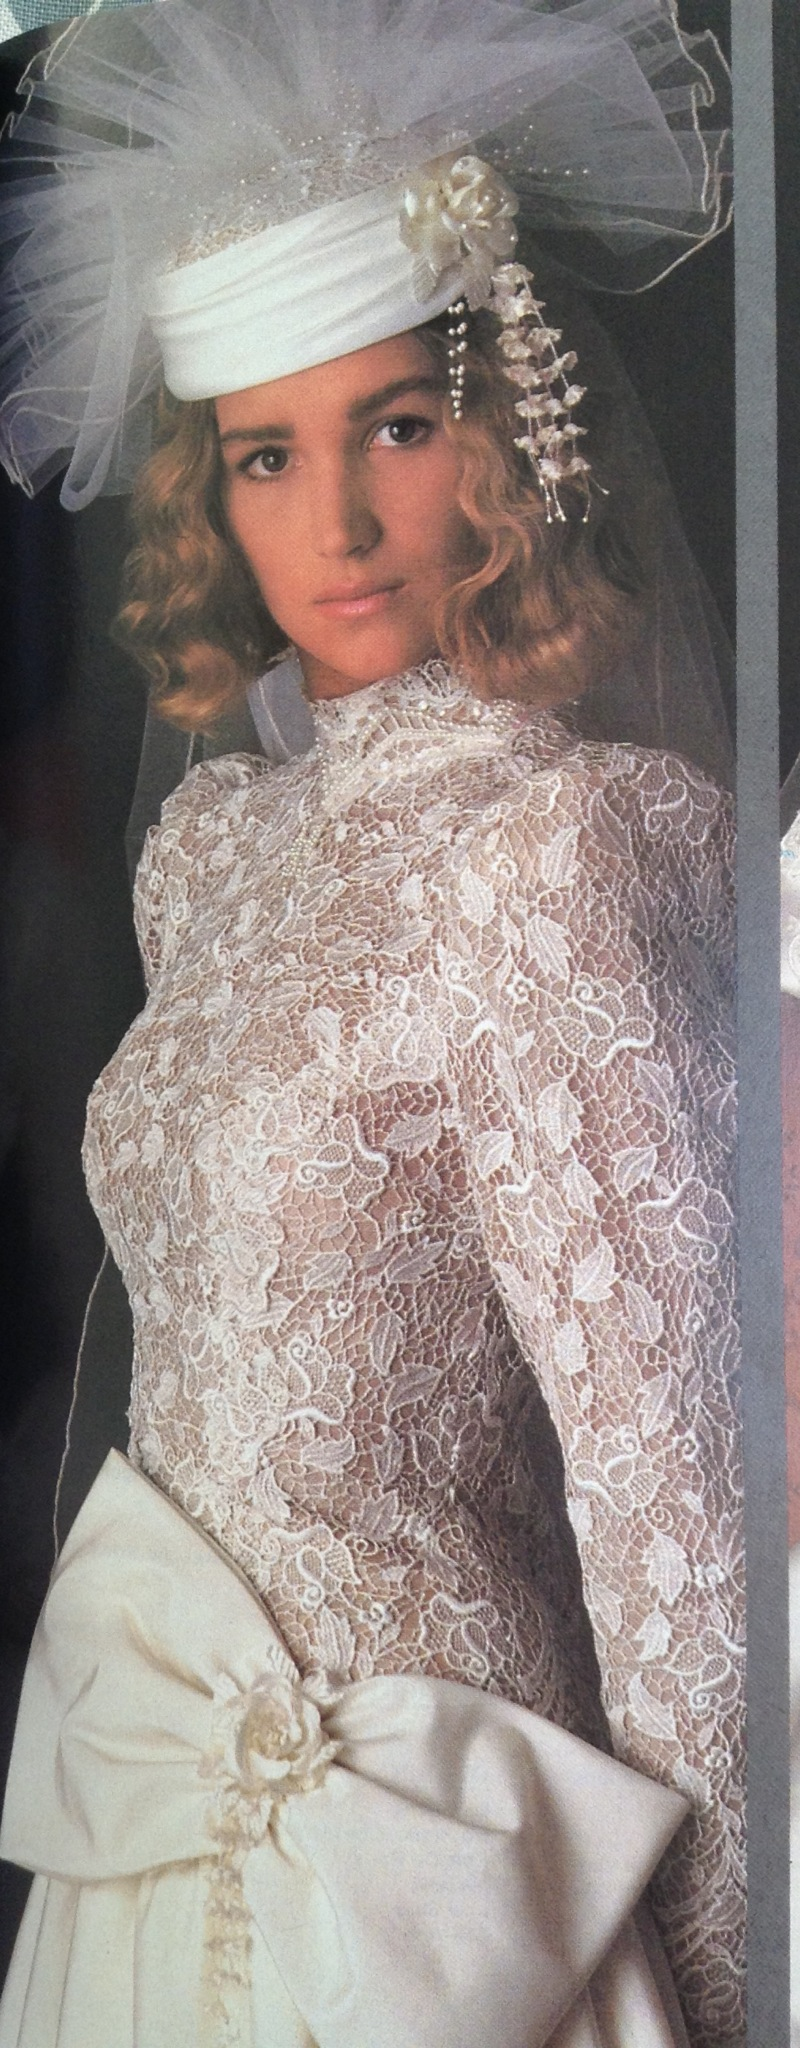 80s Fashion Exclusive The 11 Worst Wedding Gowns Bridesmaid Dresses From The 1985 Bride S Magazine J C Lillis